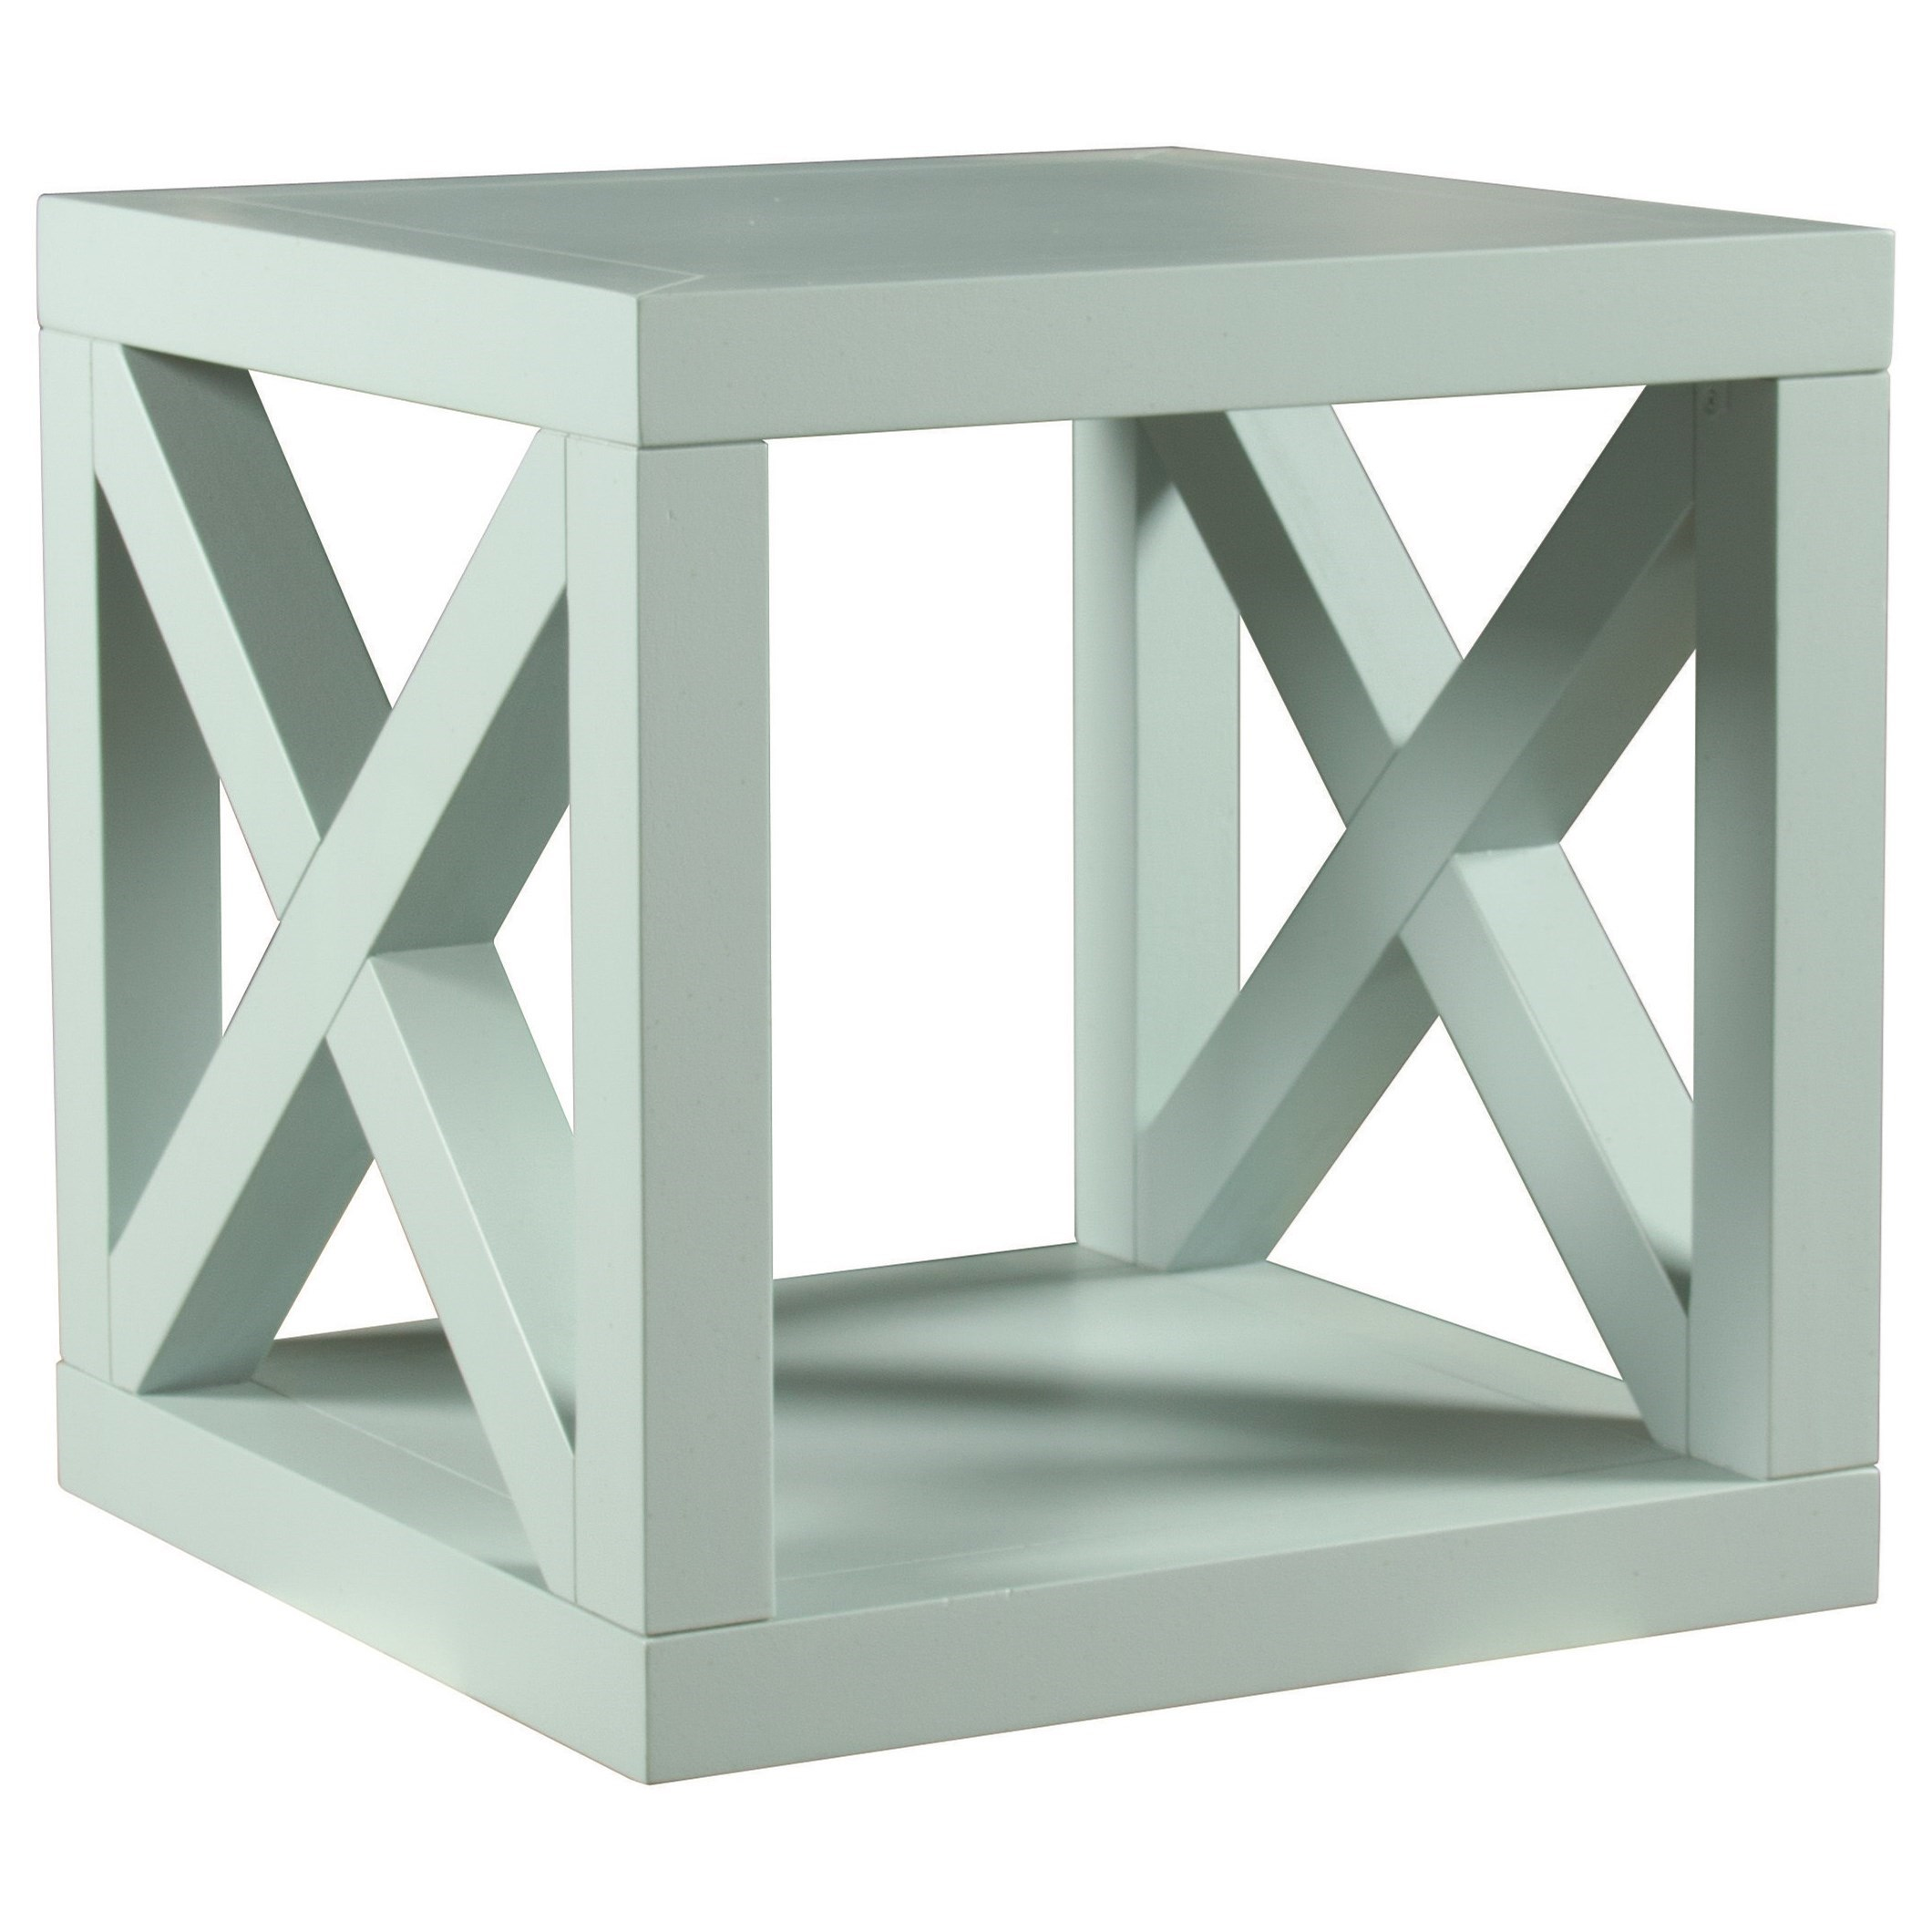 Axis Cube Table by Bassett at Esprit Decor Home Furnishings